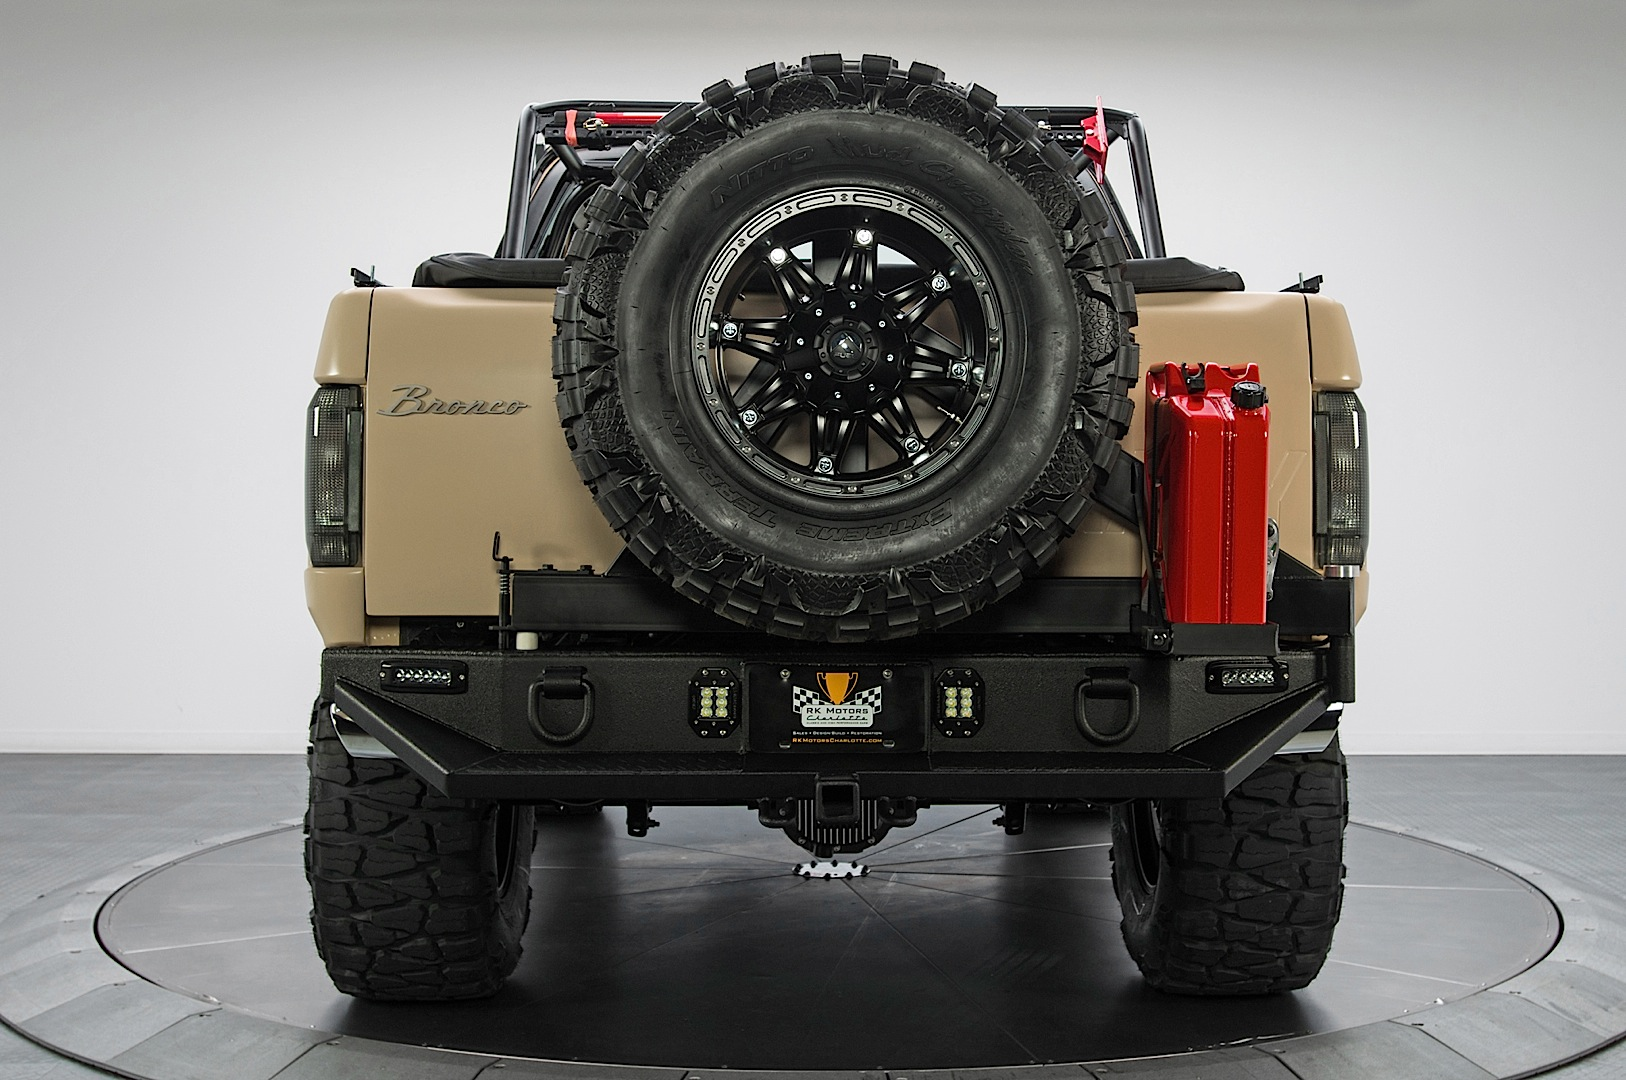 1Ford-Bronco-Operation-Fearless-RK-Motors_4